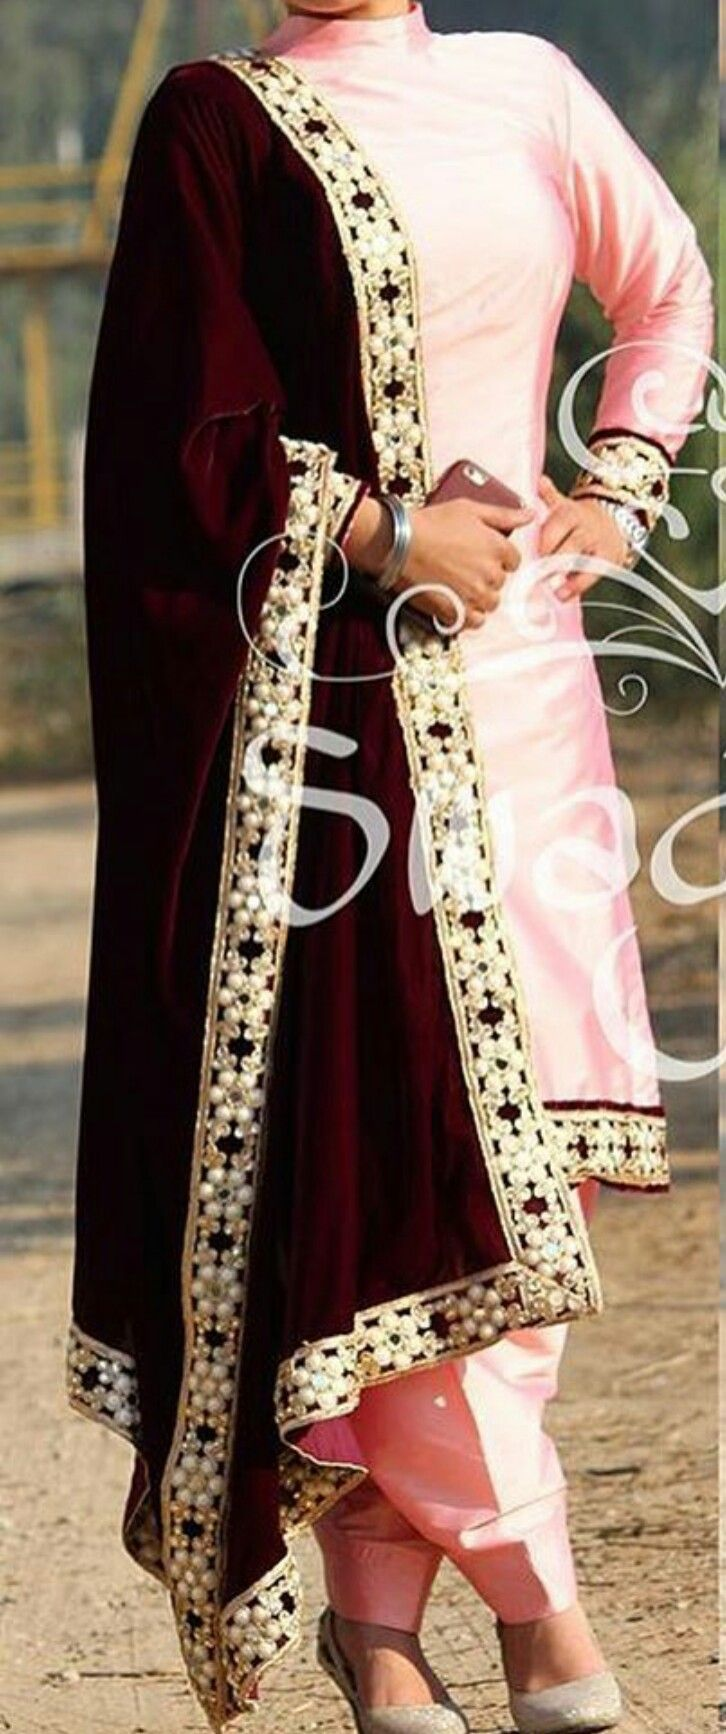 Boutique Suit Baby Pink Silk Suit With Velvet Dupatta Whatsapp 919646916105 Indian Outfits Clothes For Women Punjabi Outfits,Graphic Design Creative Dance Poster Background